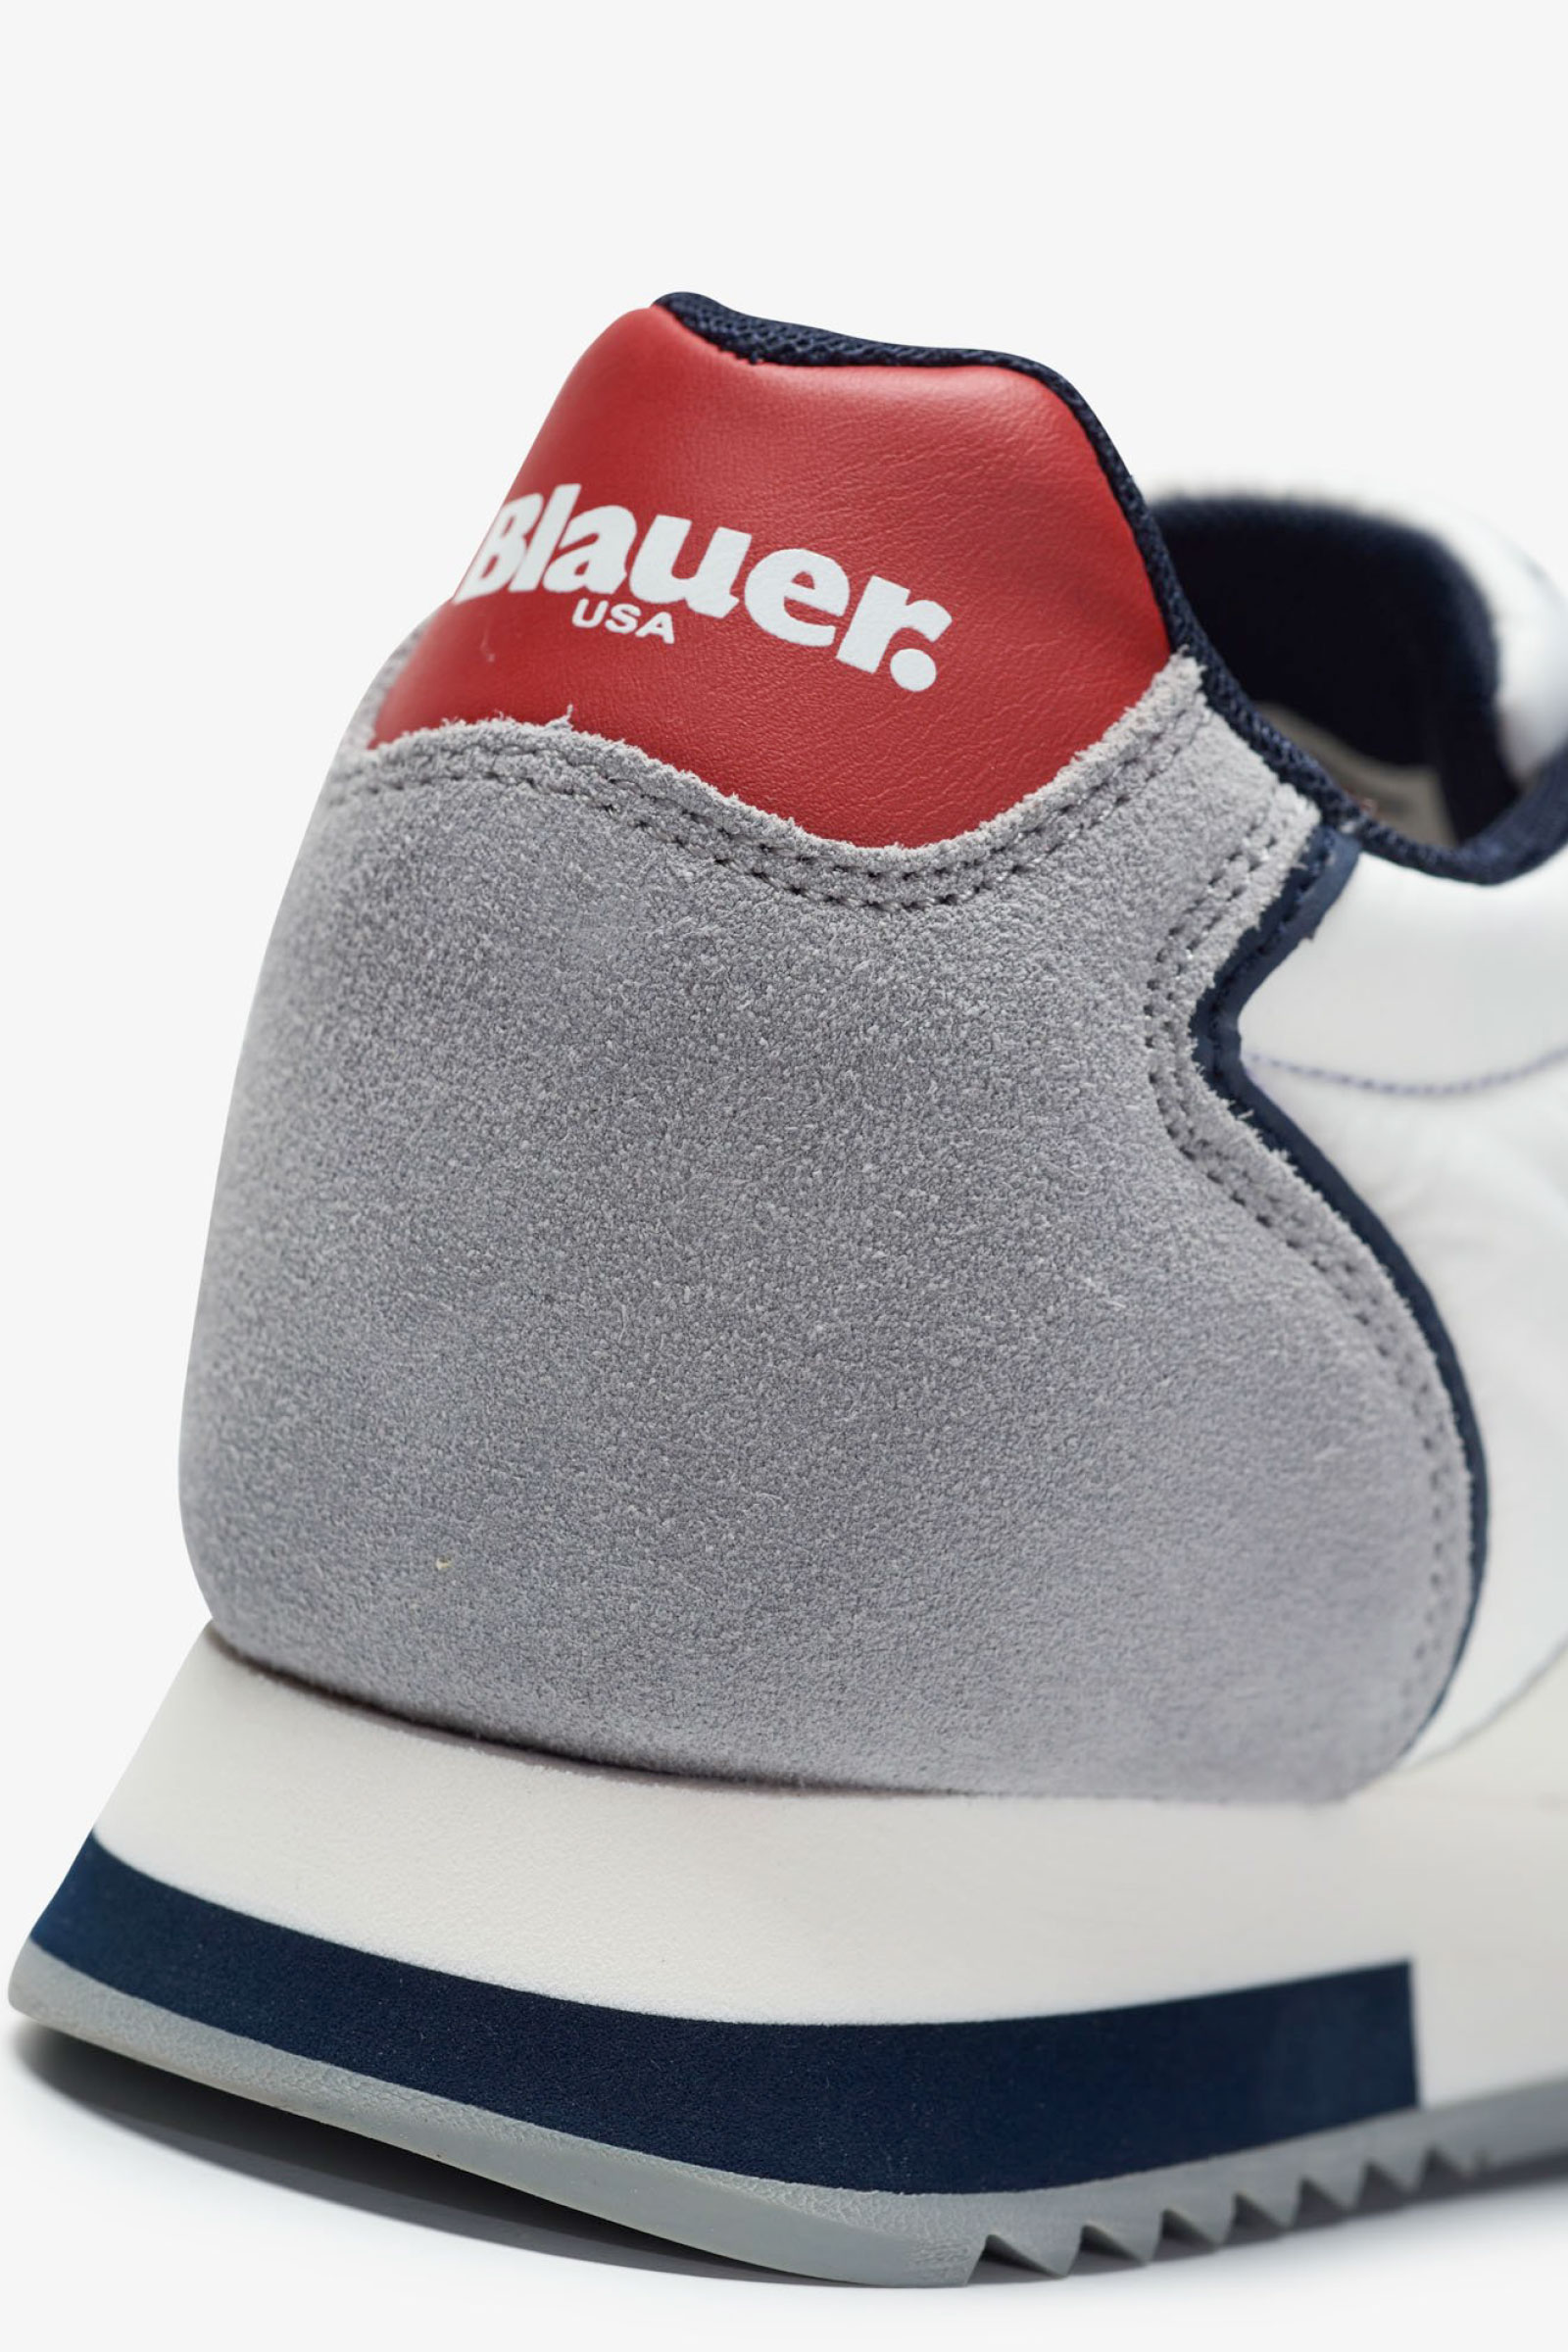 BLAUER   Shoes   S1QUEENS01/MESWRN